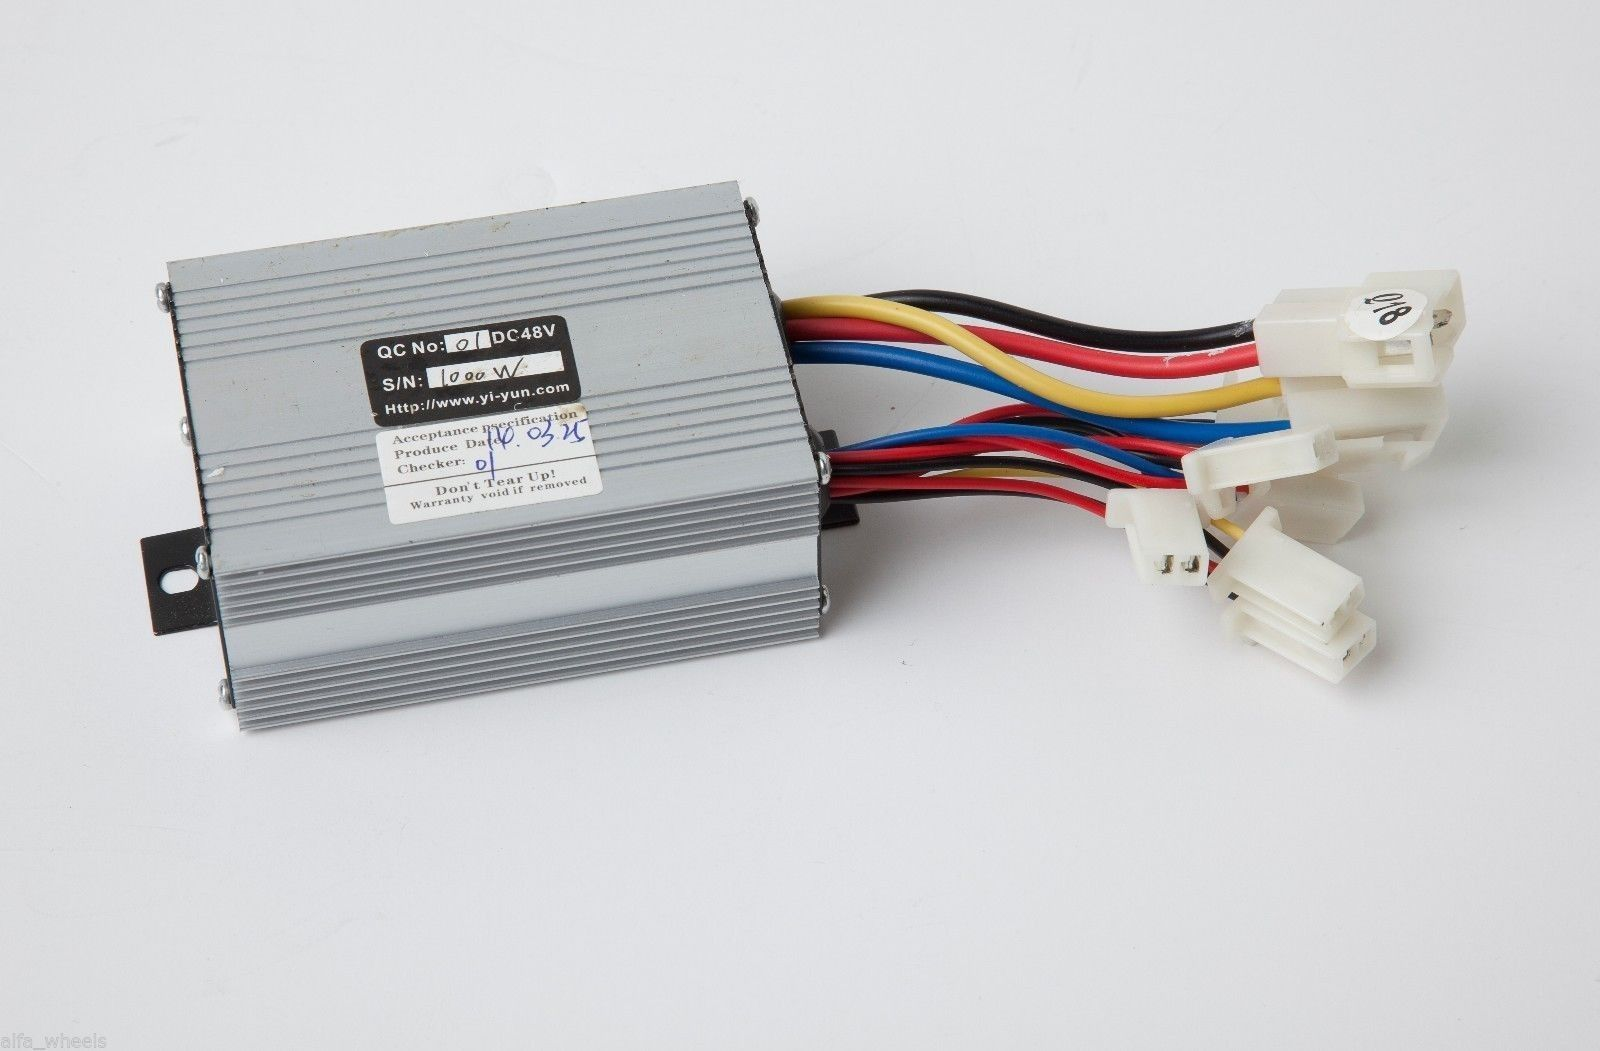 1000 watt 36v dc speed controller for scooter mini bike for 36v dc motor controller